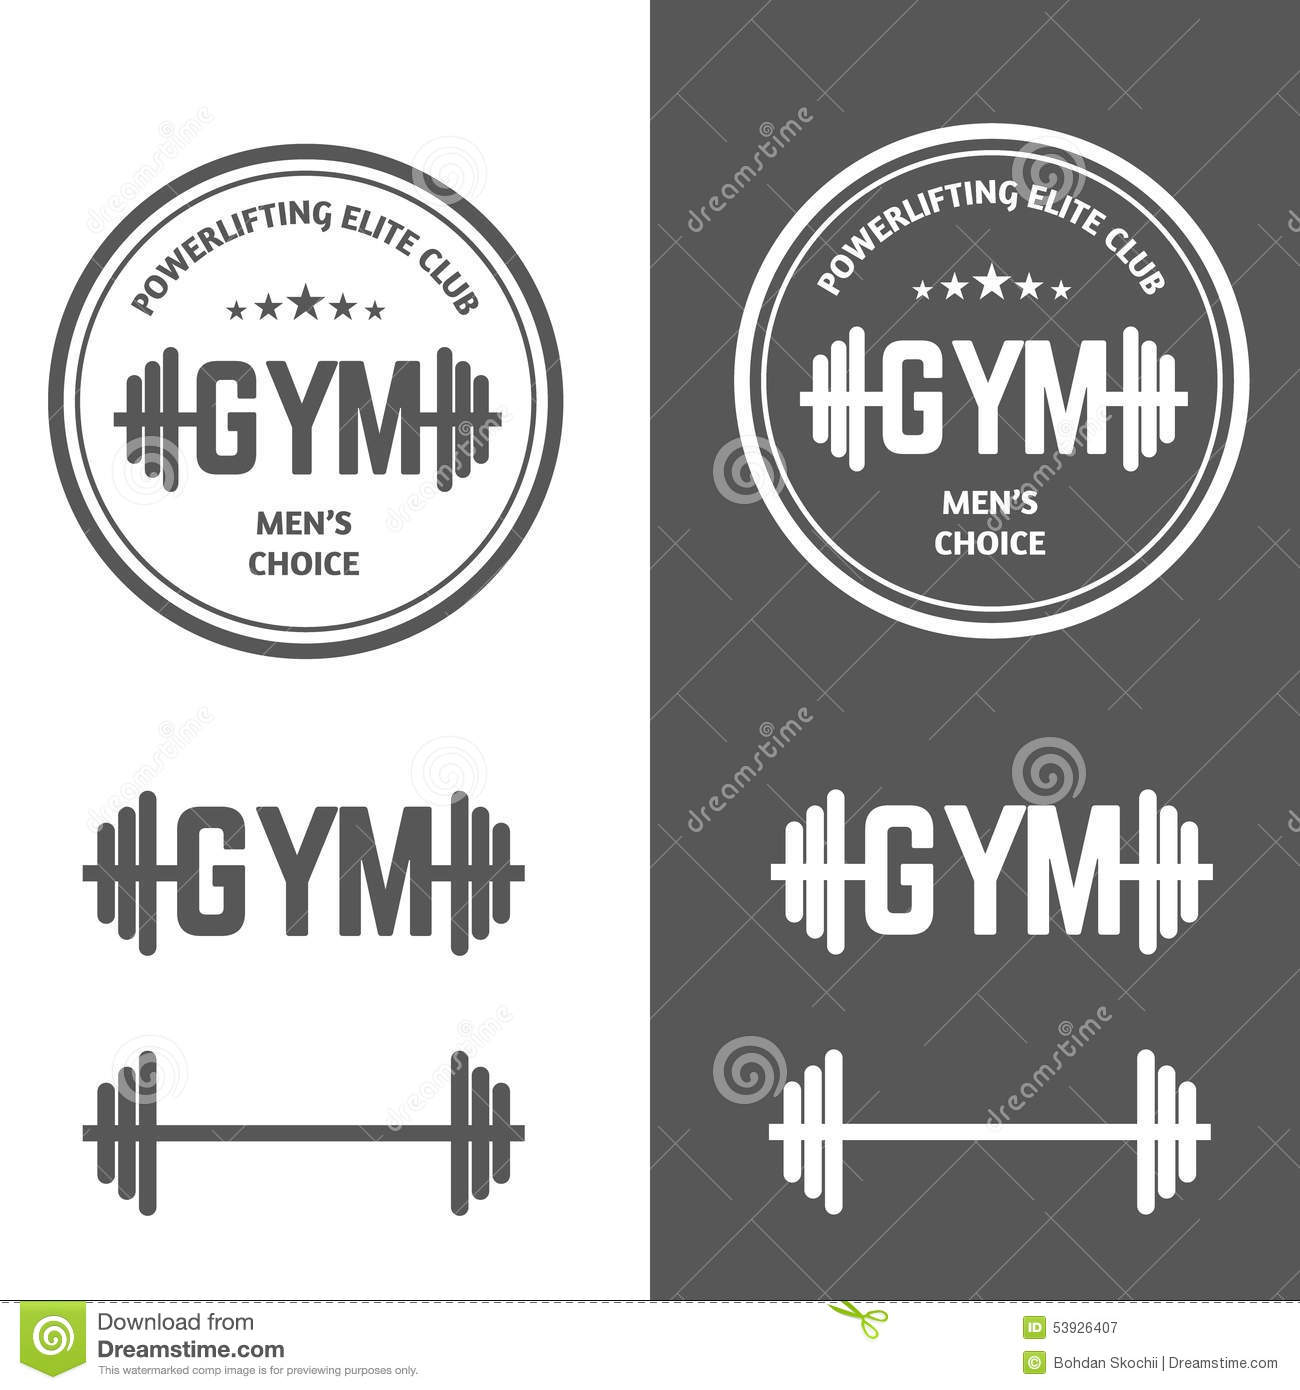 Gym Powerlifting Stock Vector - Image: 53926407